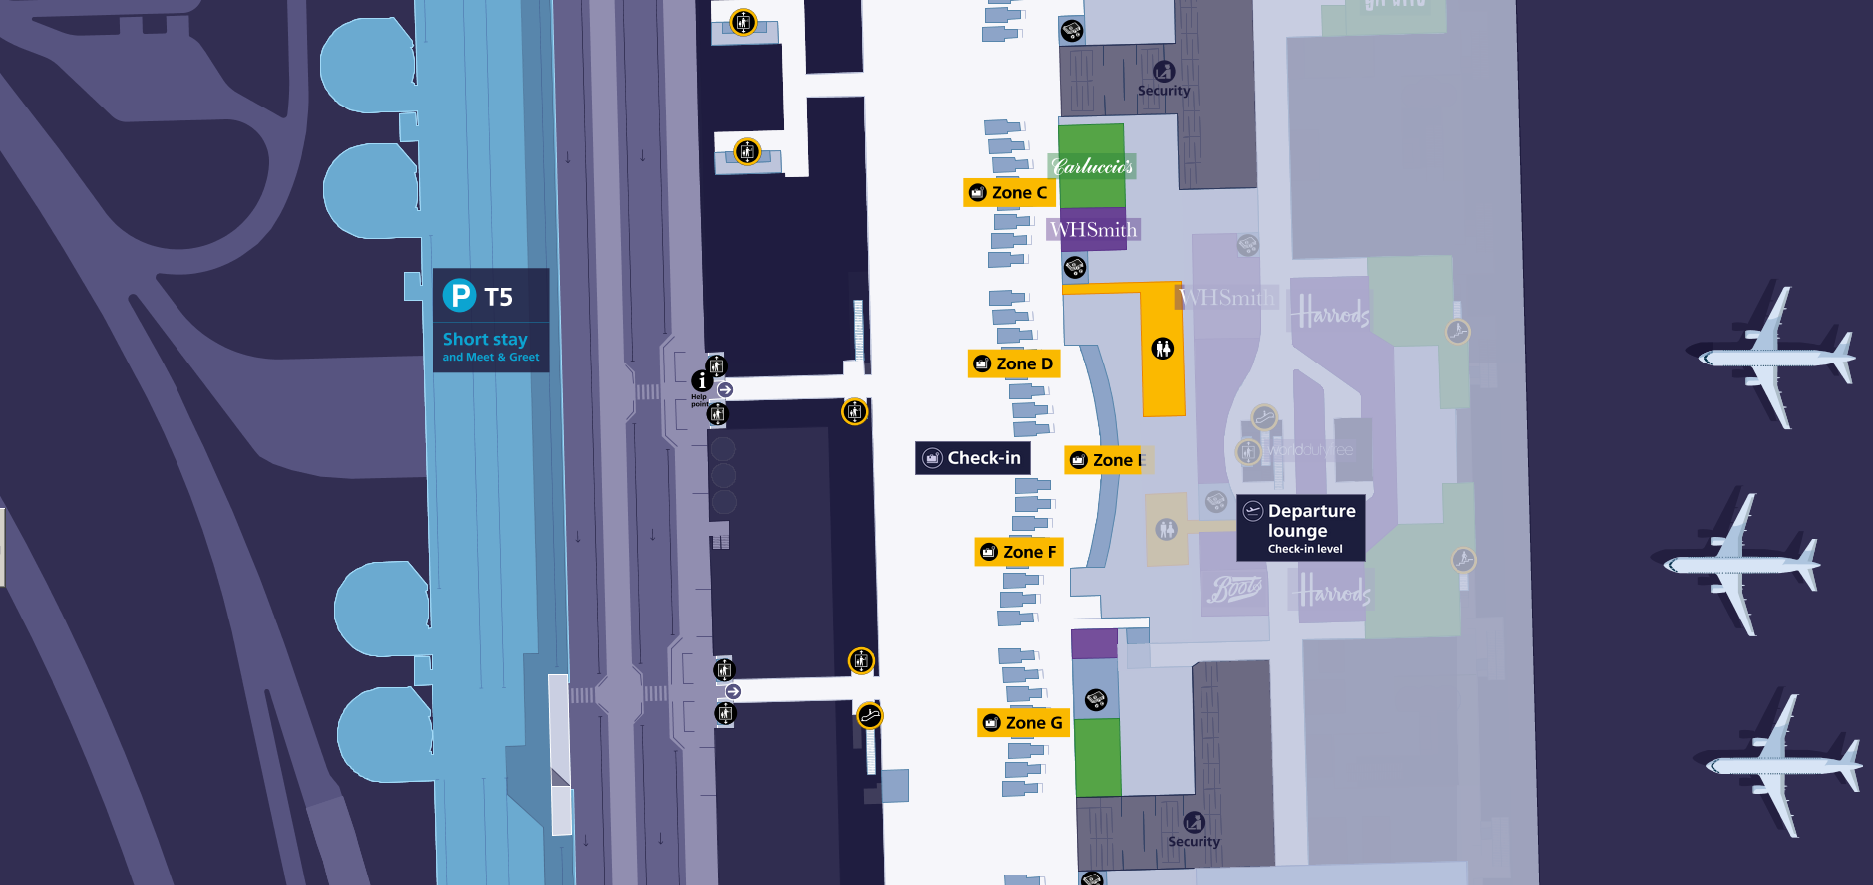 Terminal 5 map heathrow taxis click image to enlarge m4hsunfo